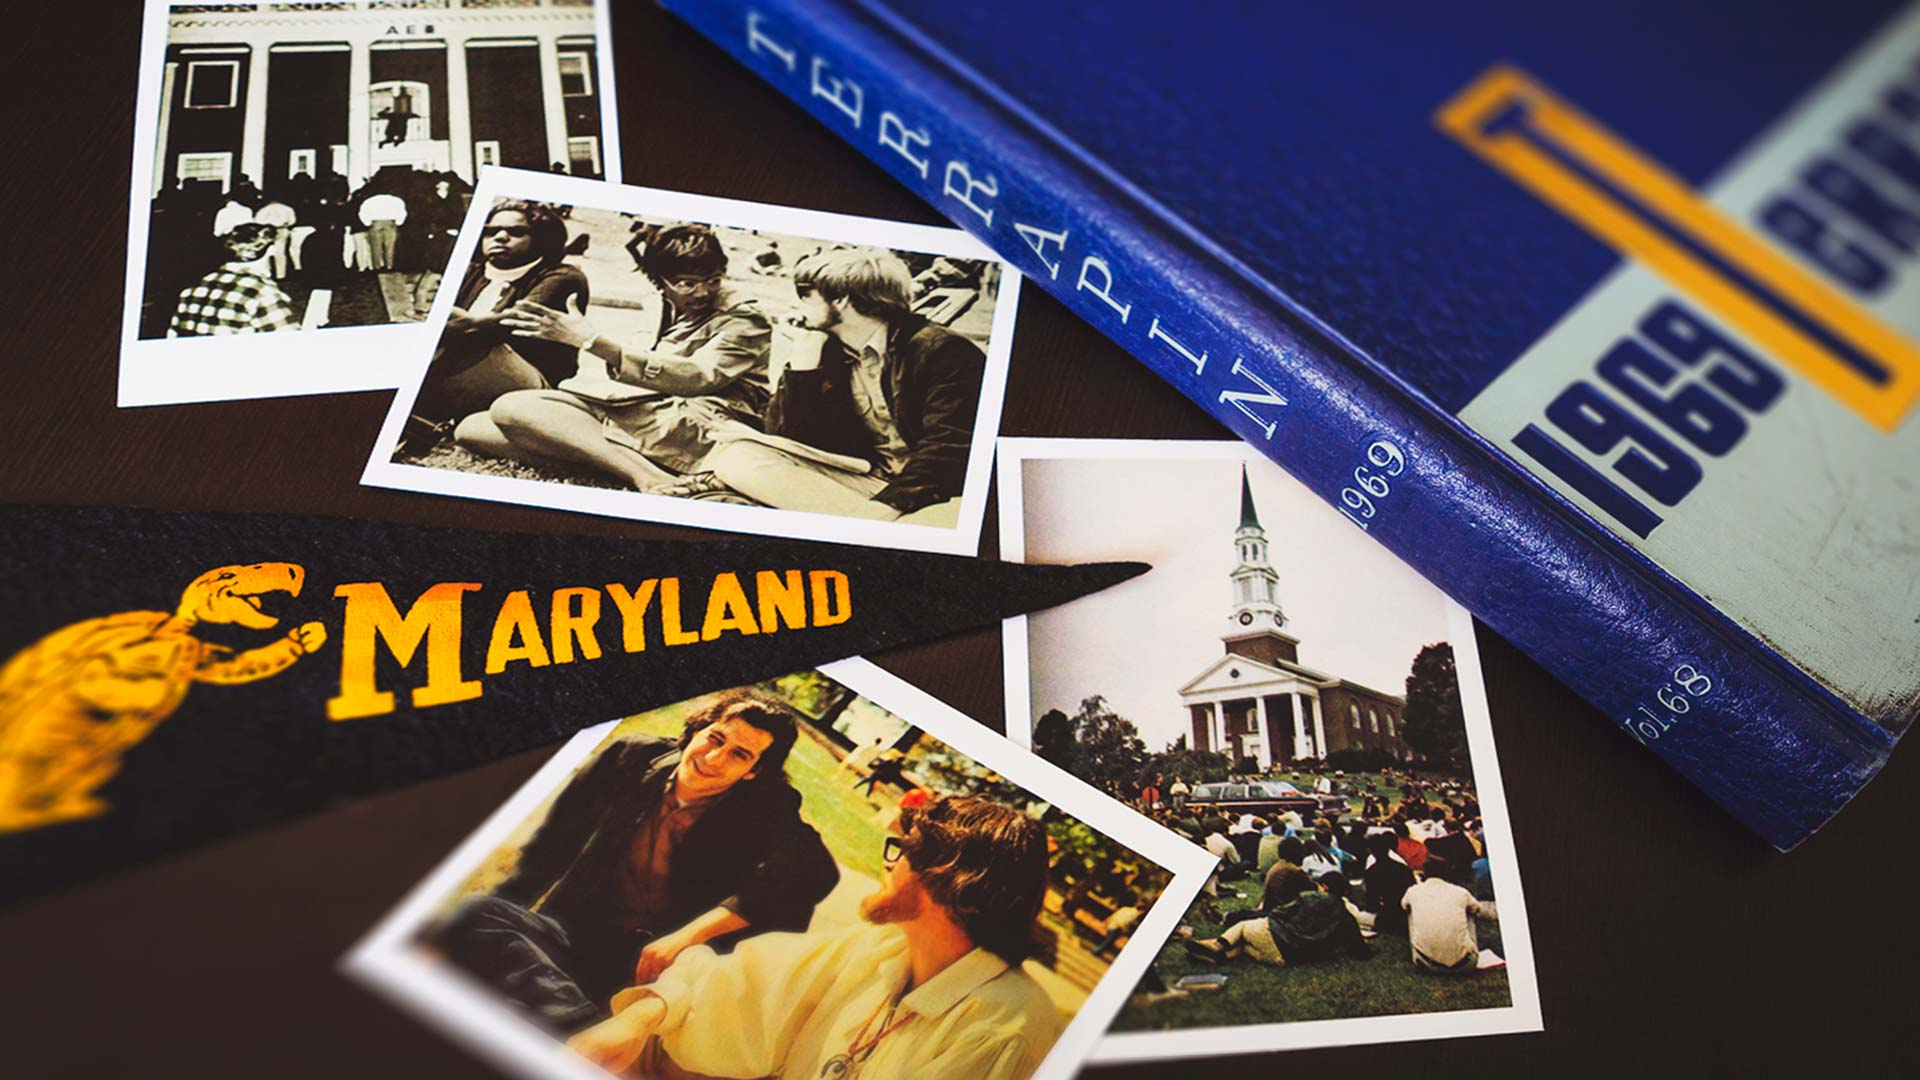 Graduates from UMD's Class of 1969, returning to campus for their 50-year reunion tomorrow, remembered unrest over the Vietnam War, the hippie movement and the infamous nude runners from their time as Terps. (Photos via the 1969 Terrapin yearbook)